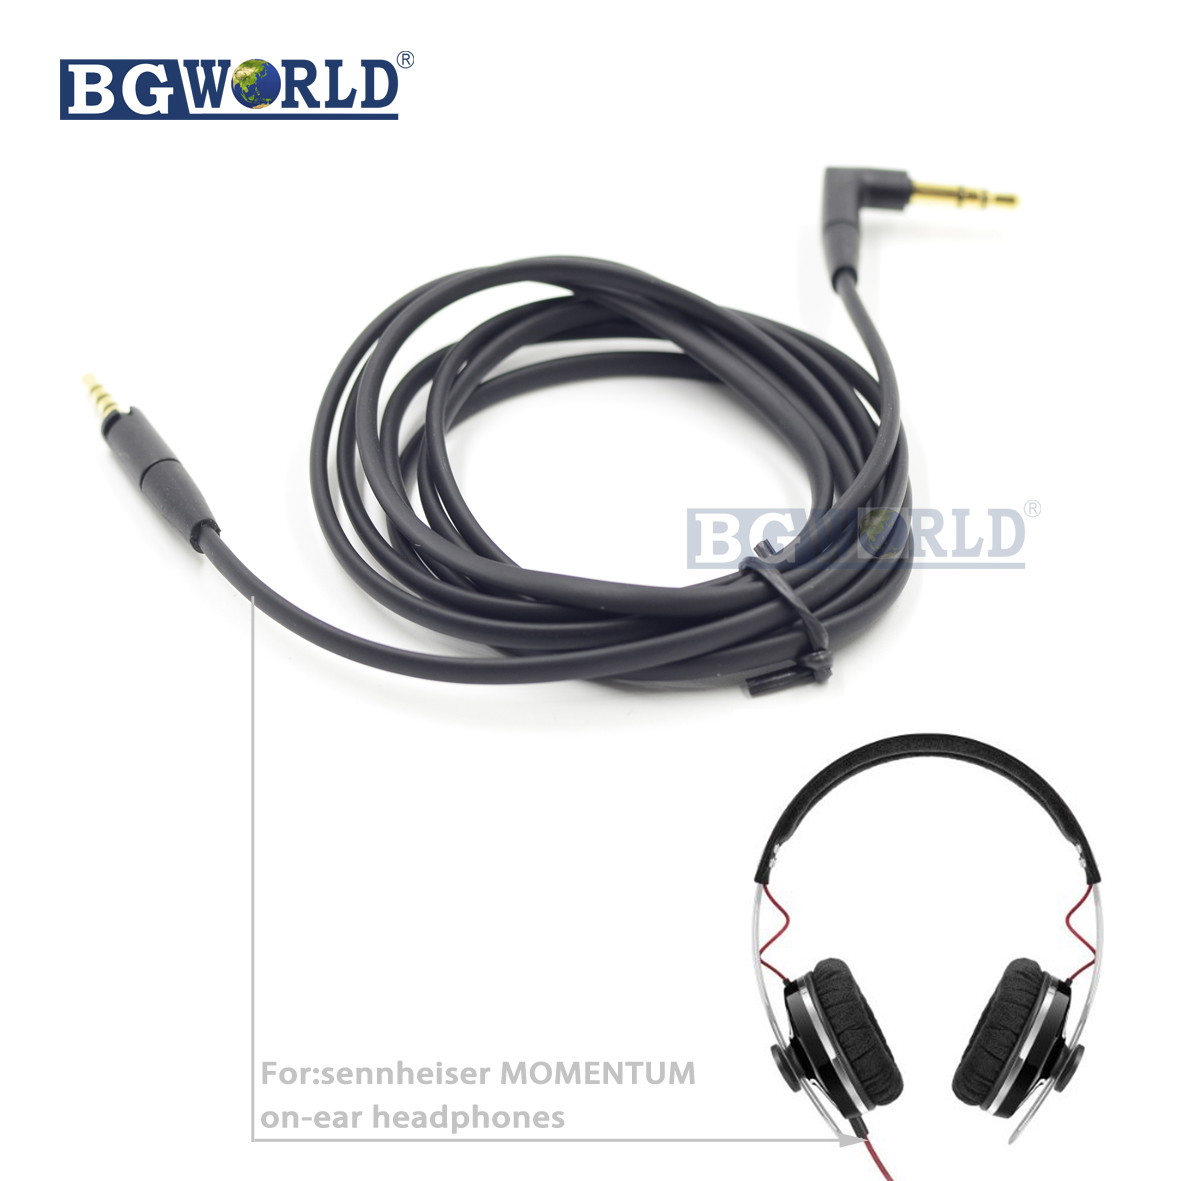 Bgworld Replacement Audio Cable Line Cord Wire For Sennheiser Momentum 1 0 2 0 Over On Ear